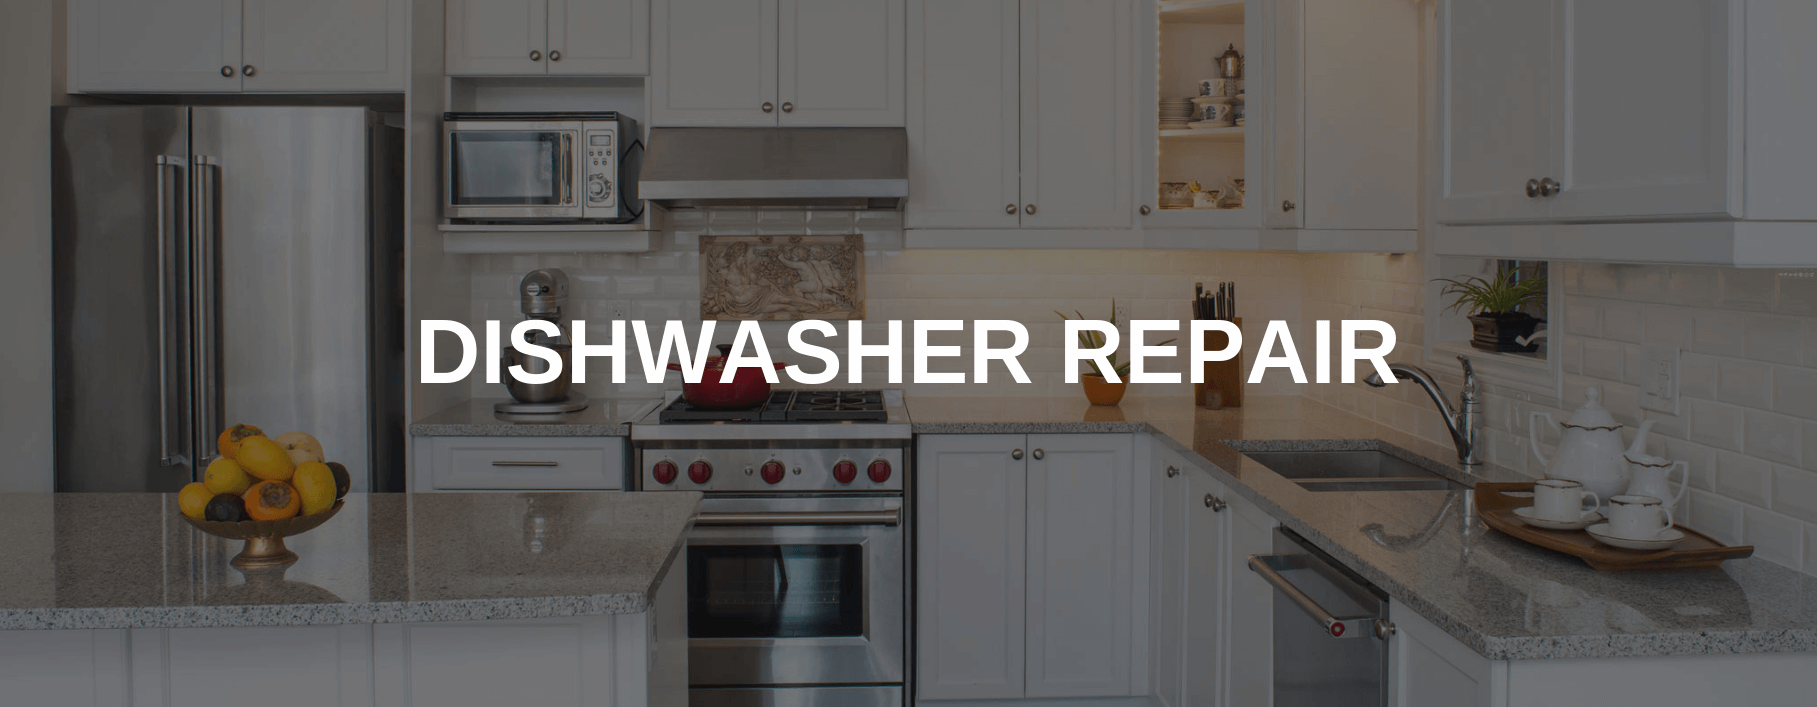 dishwasher repair miramar